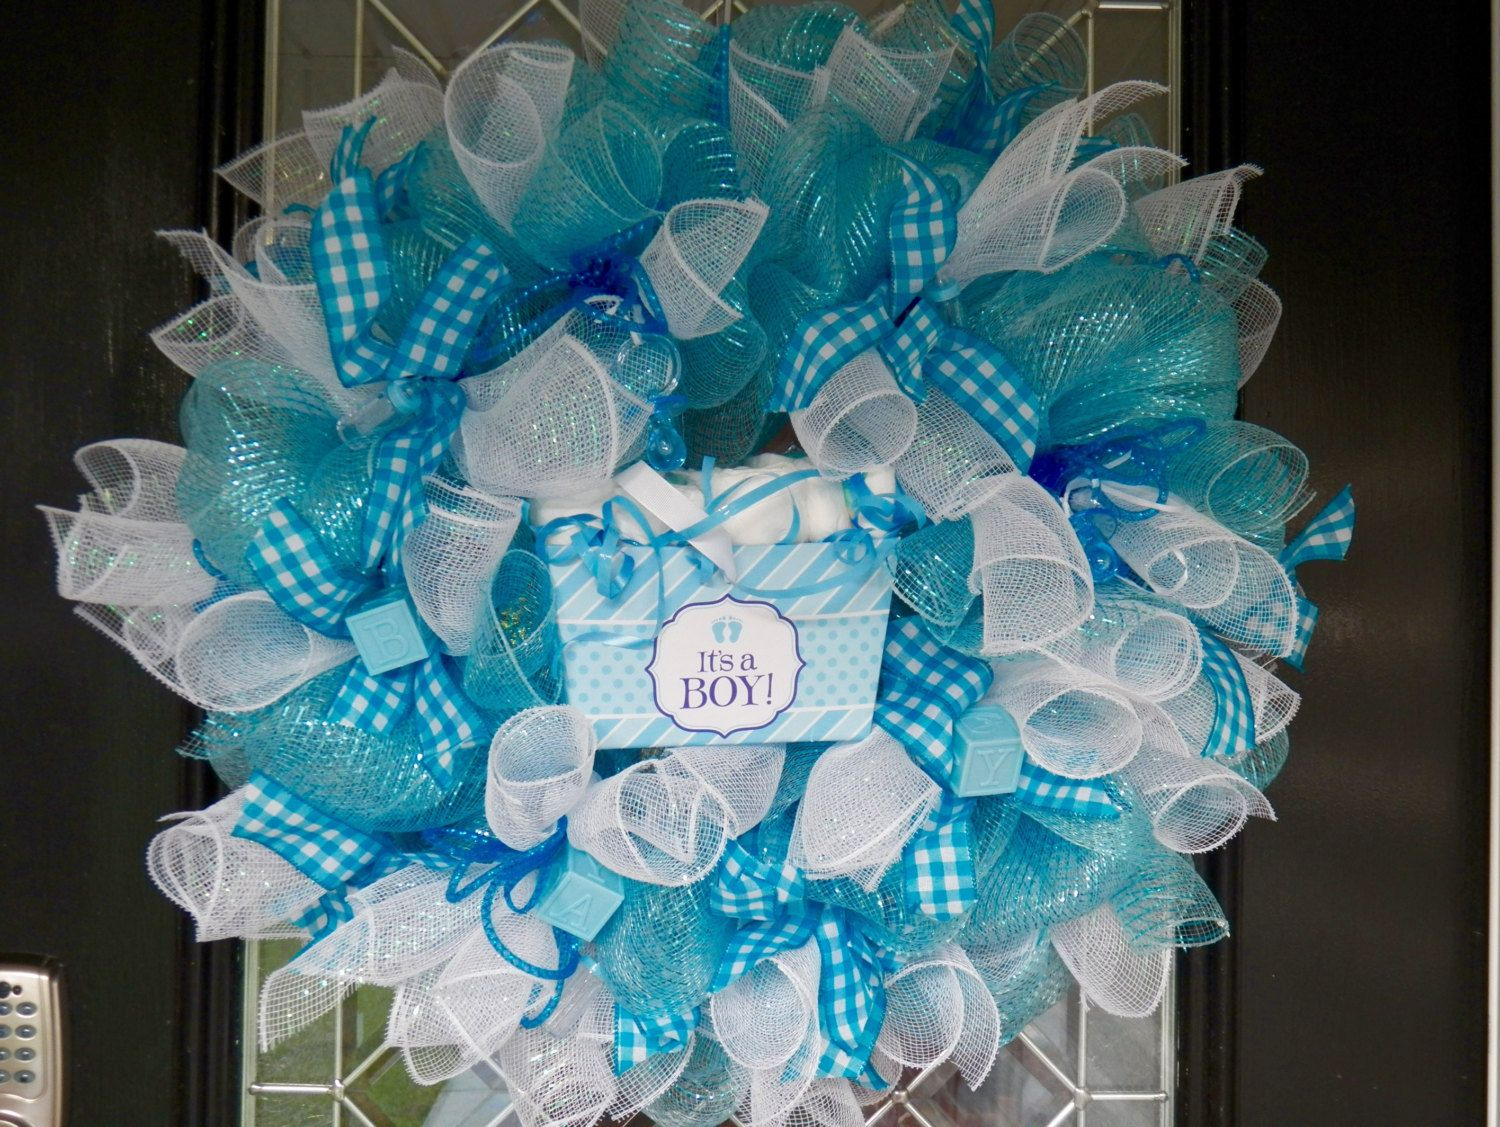 Gift for Baby, New Baby Welcoming Wreath, Hospital Door Hanger, It's A Boy, Baby Shower Decoration by OccasionsBoutique on Etsy